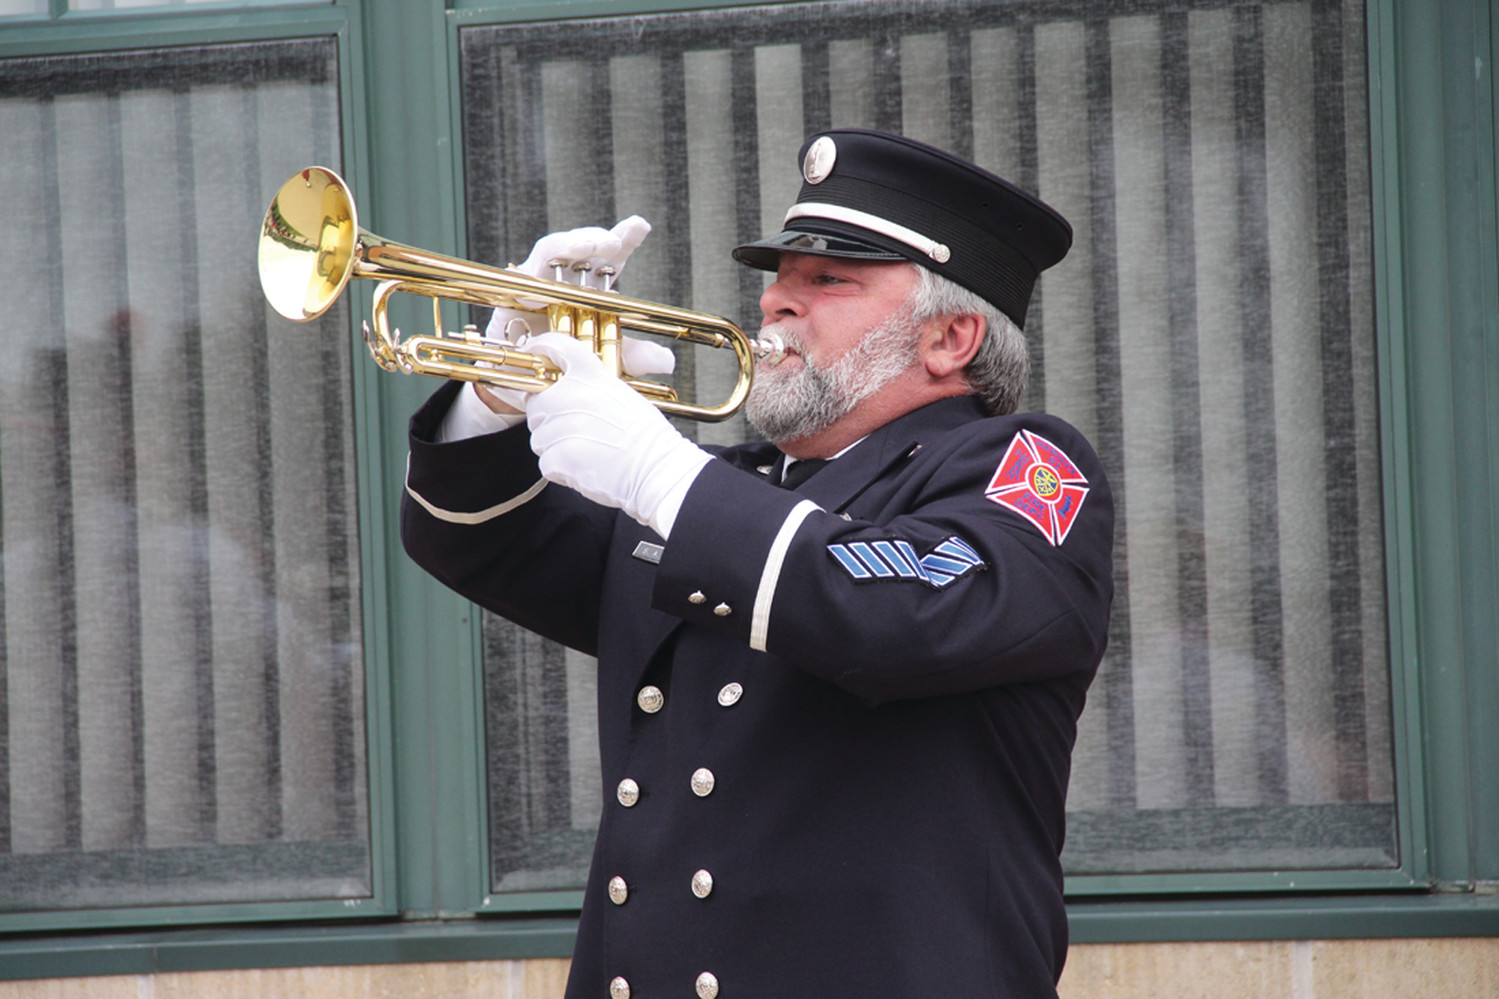 FINAL NOTES: Retired WFD Lieutenant Steve Cahoon played taps.